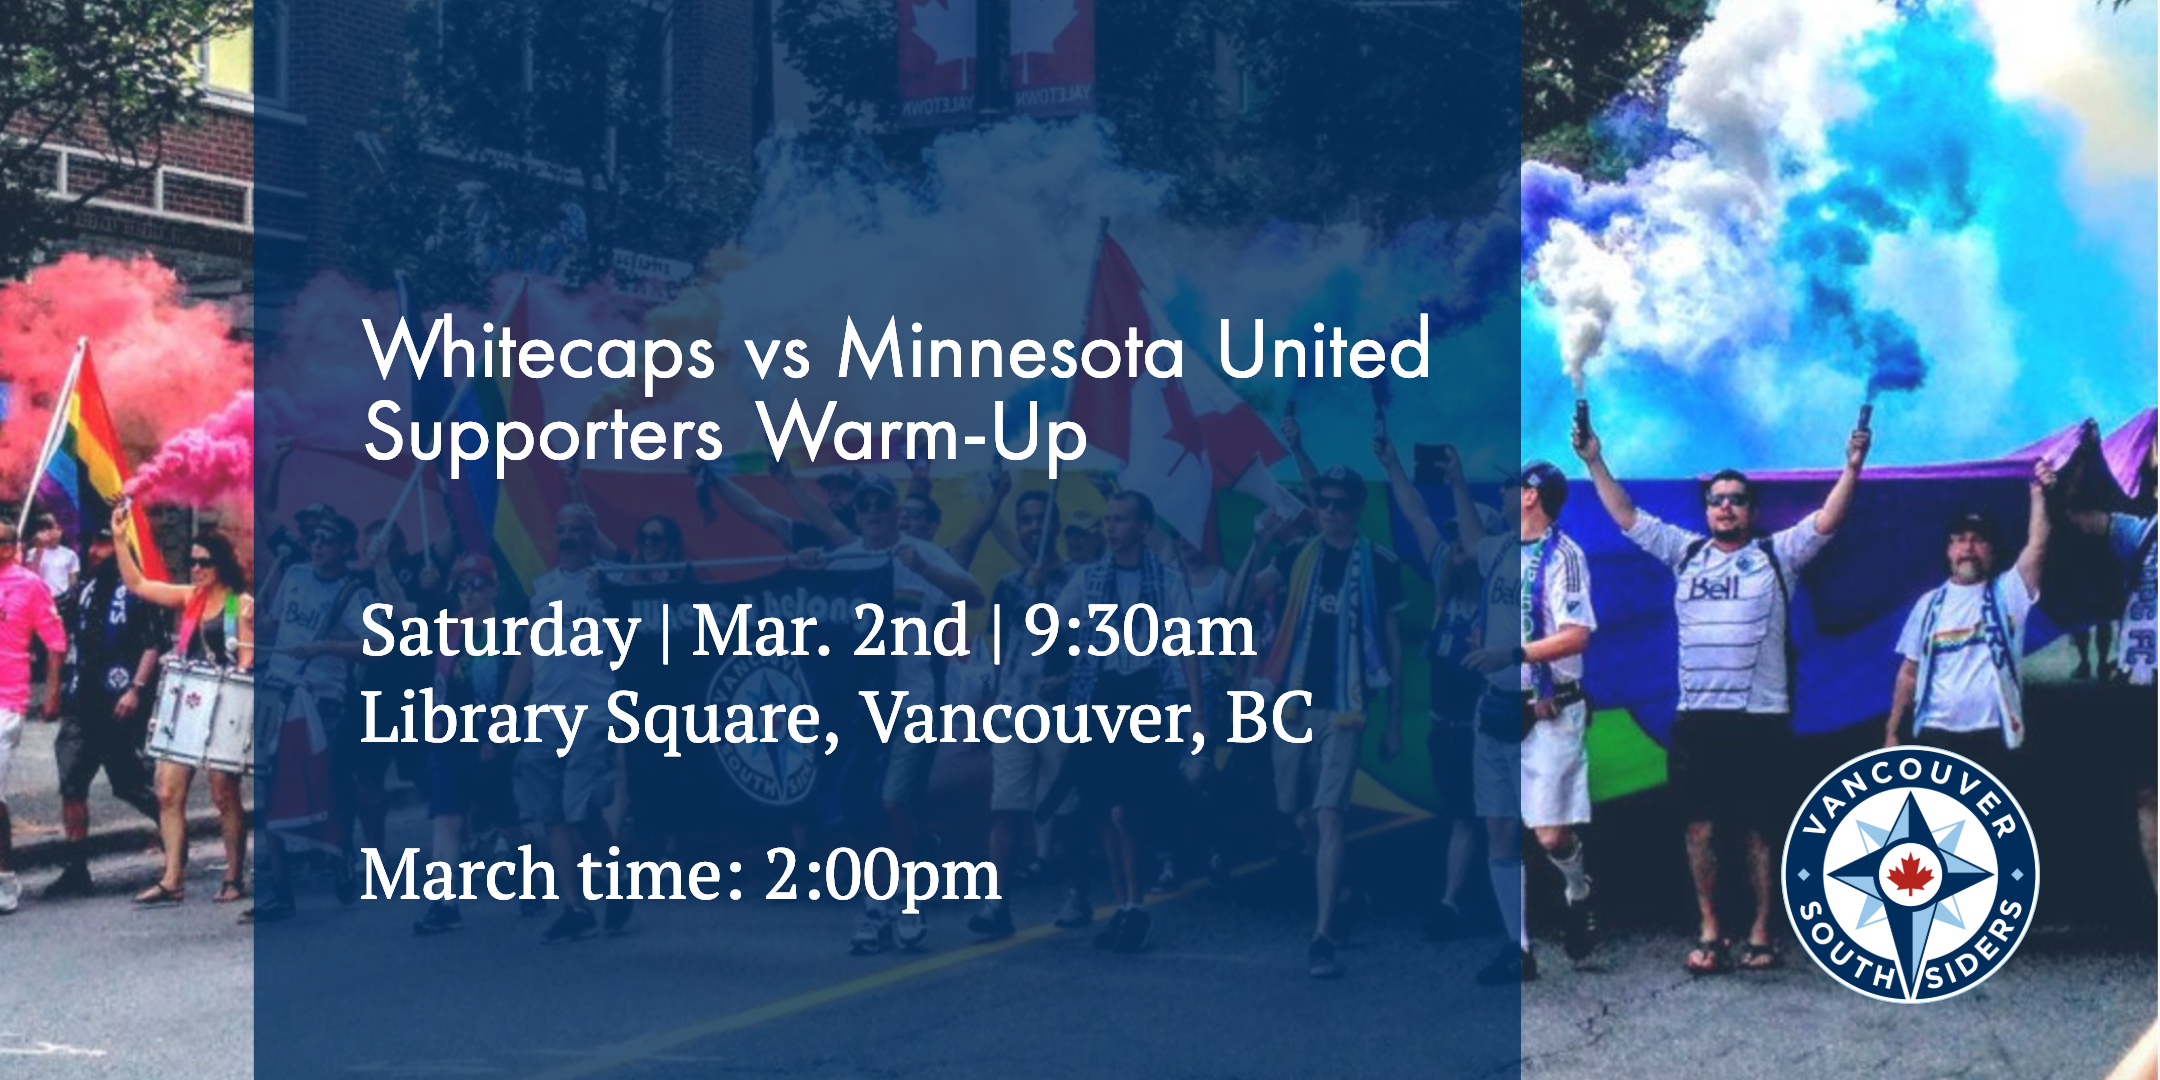 Home game vs MNUFC. Member table set up at 9:30am, march at 2:00pm